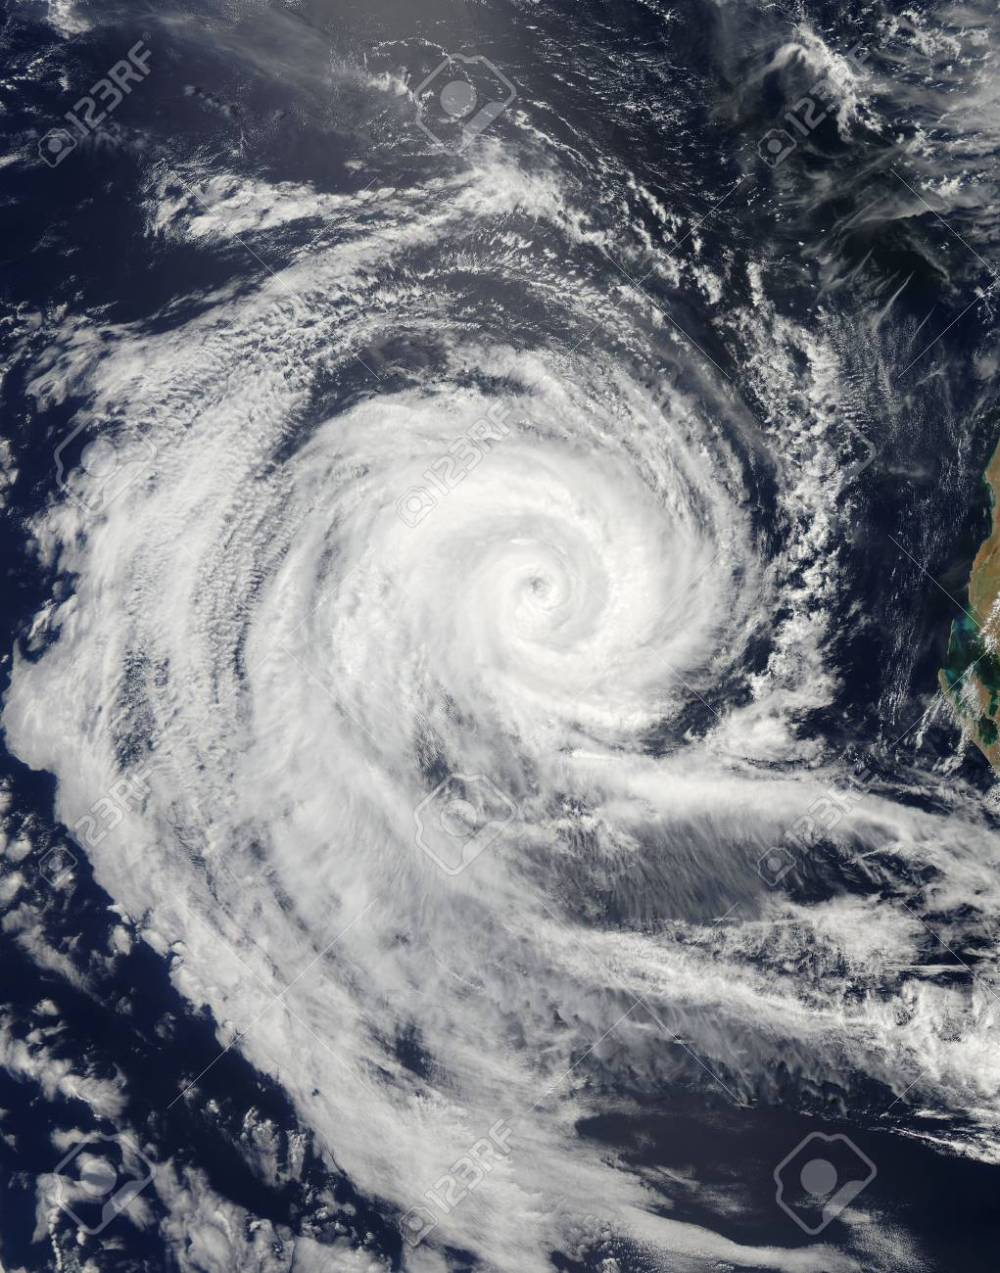 medium resolution of february 20 2011 the eye of severe tropical cyclone dianne swirled in the indian ocean as storm bands lashed the waters and also blew across the land